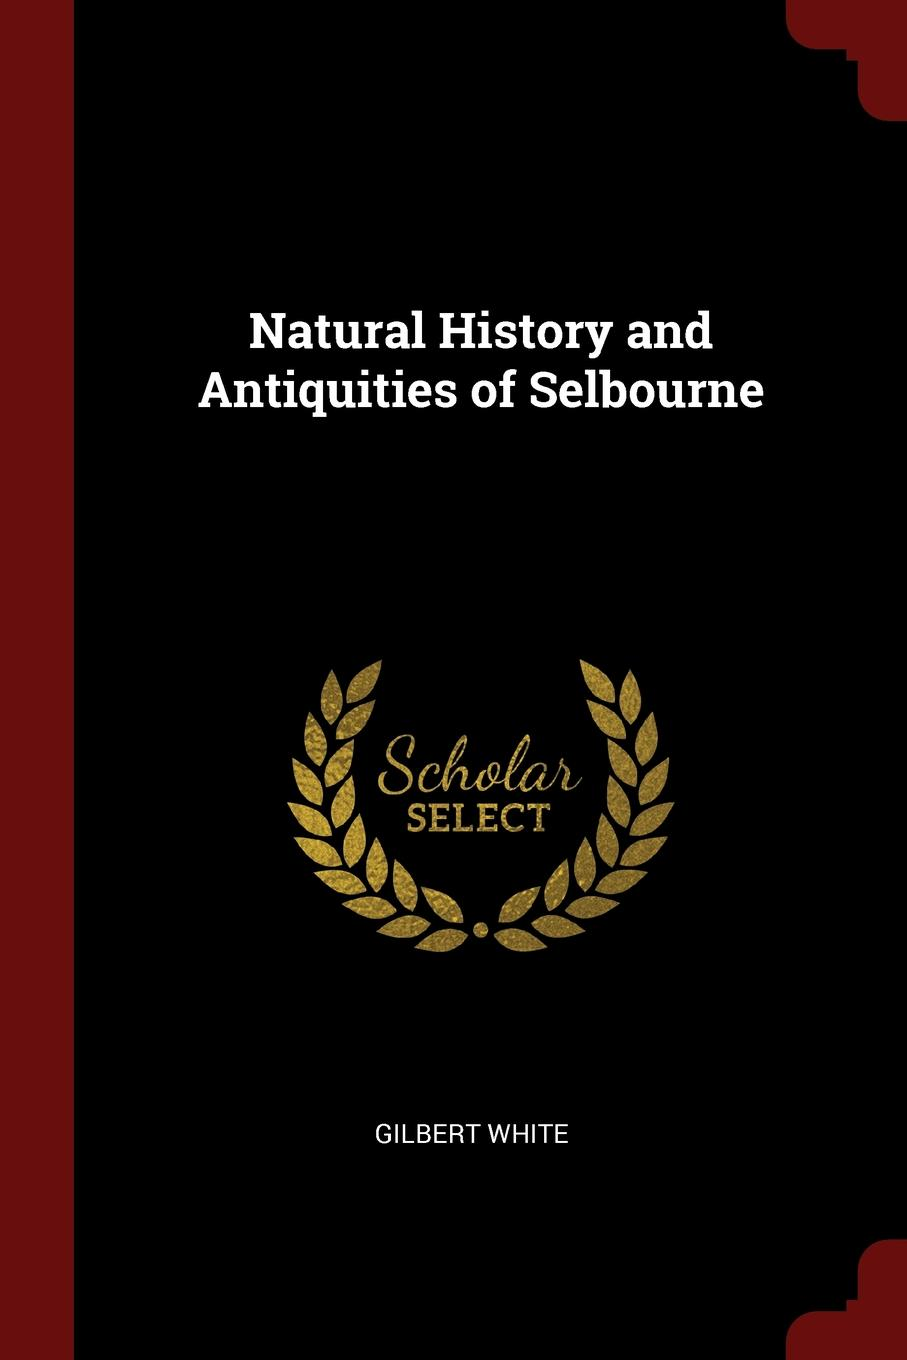 Gilbert White Natural History and Antiquities of Selbourne